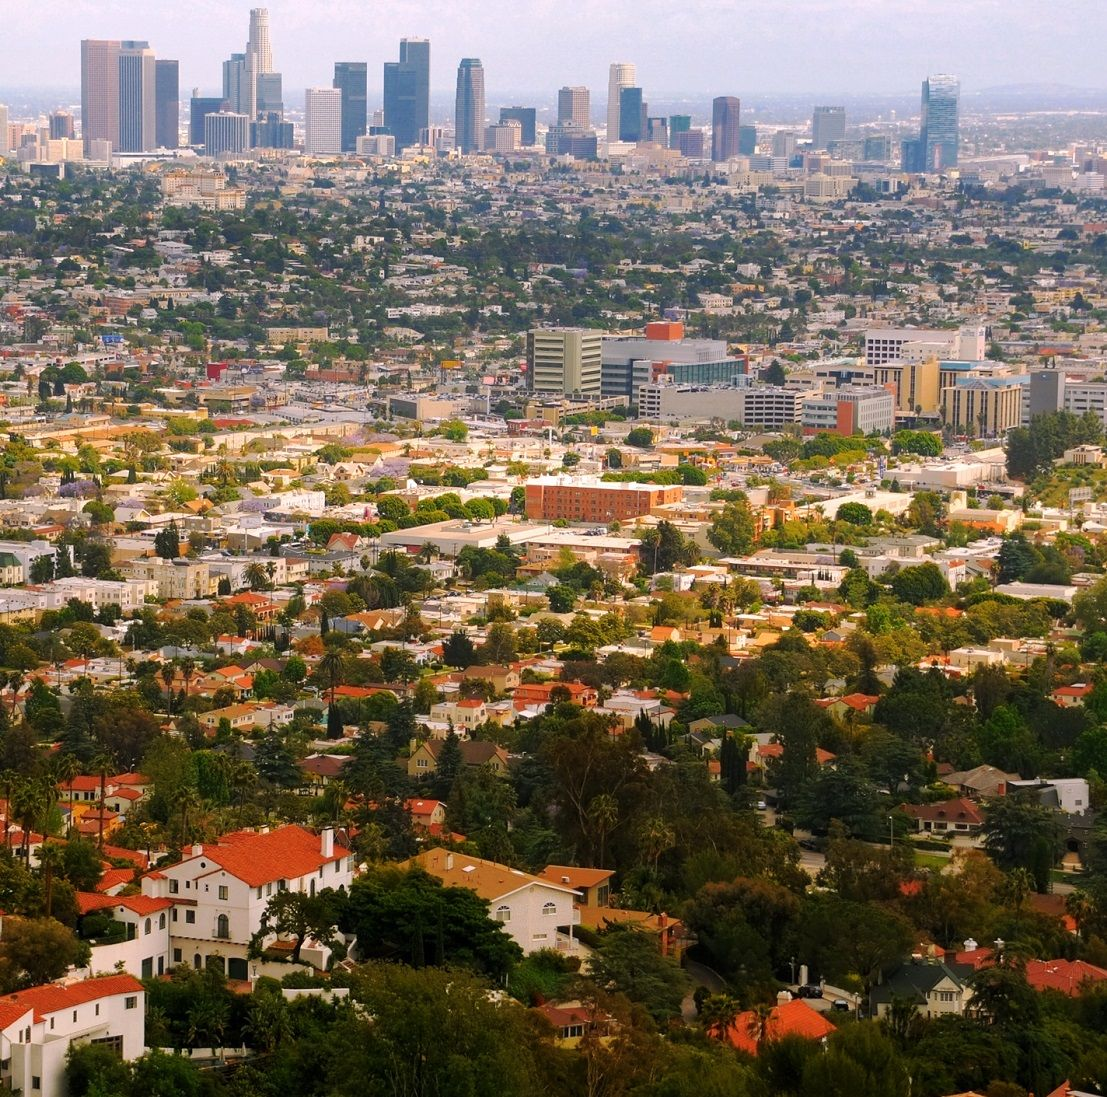 How to Sell Your House in Los Angeles Fast?